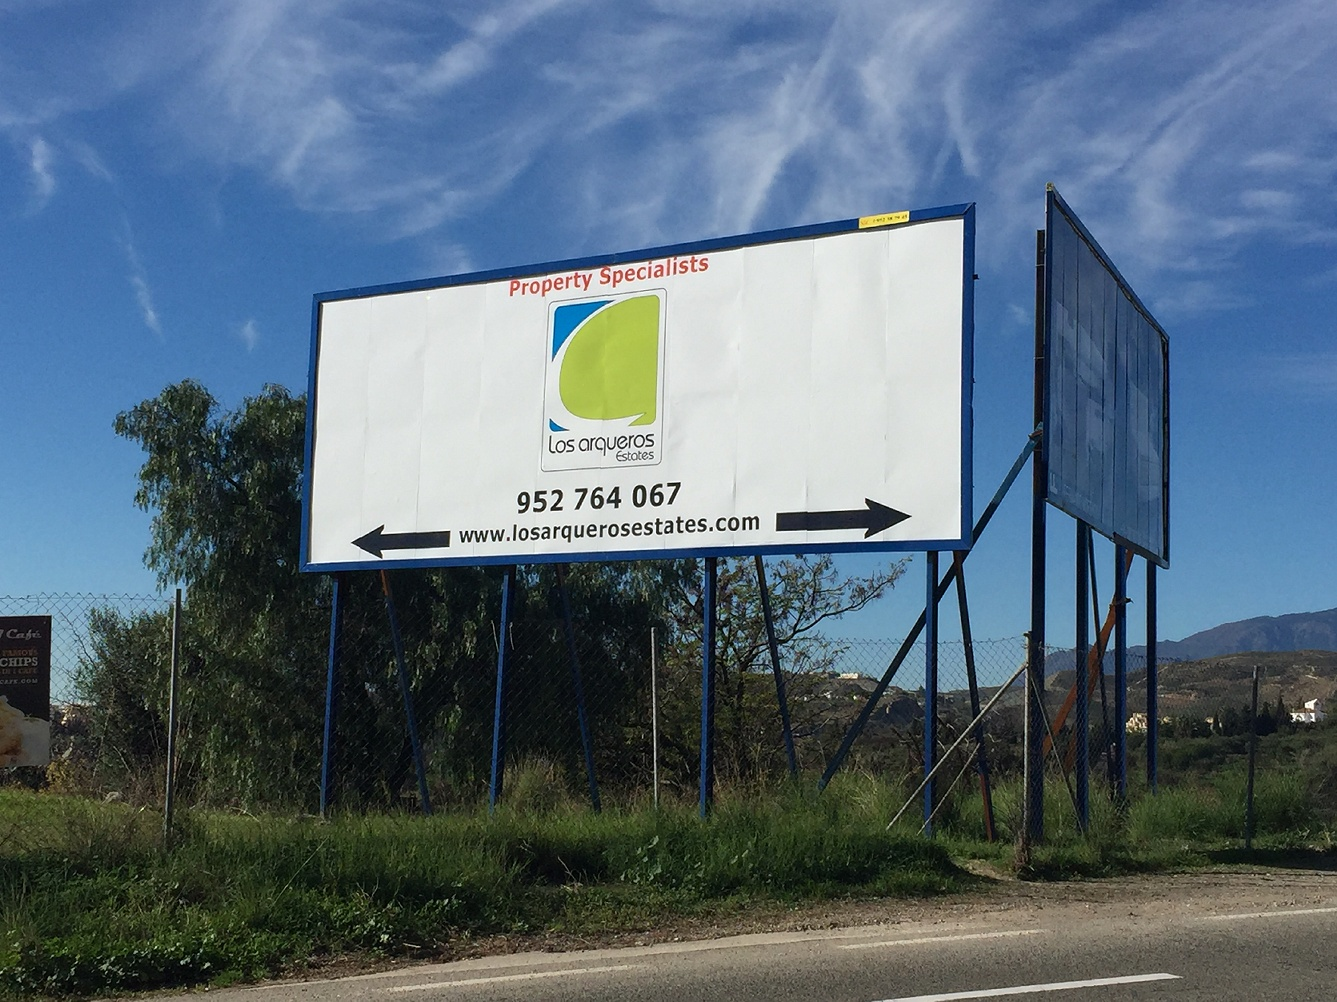 Roadside banner_Ronda road_Advertising on a busy junction near Los Arqueros Golf